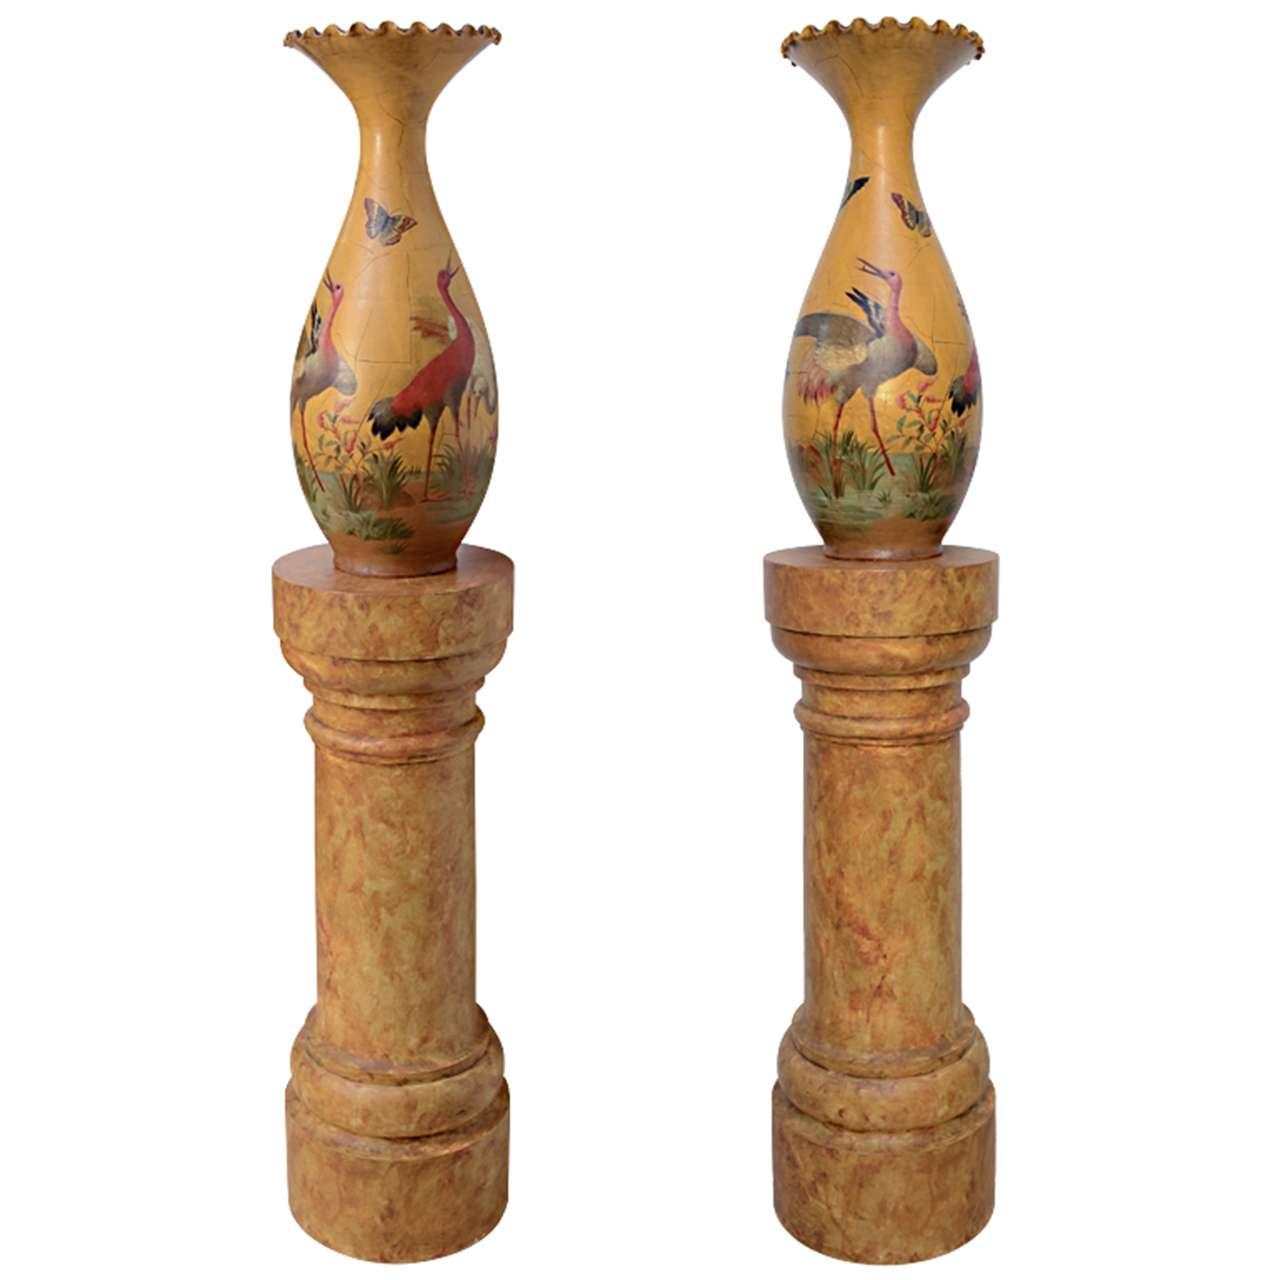 Fine Pair of Glazed Terra Cotta Urns on Stands, France 19th Century